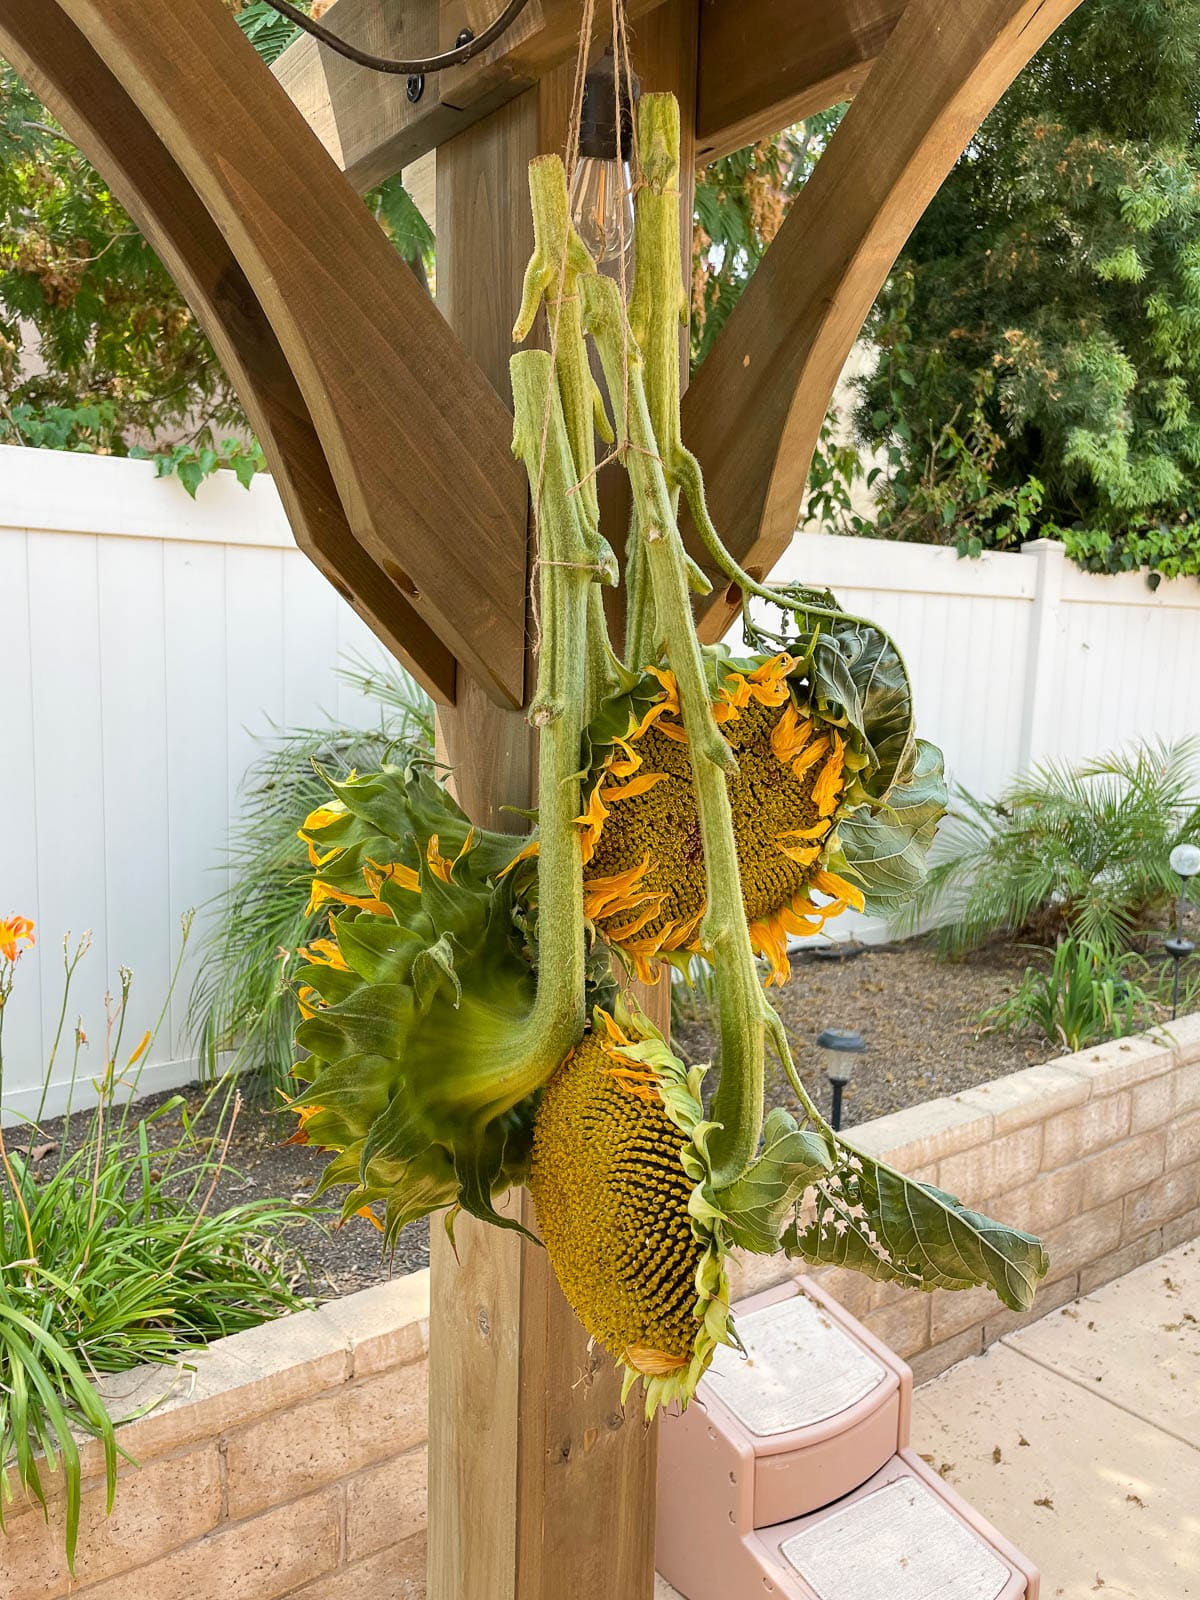 drying out sunflowers in a warm dry place